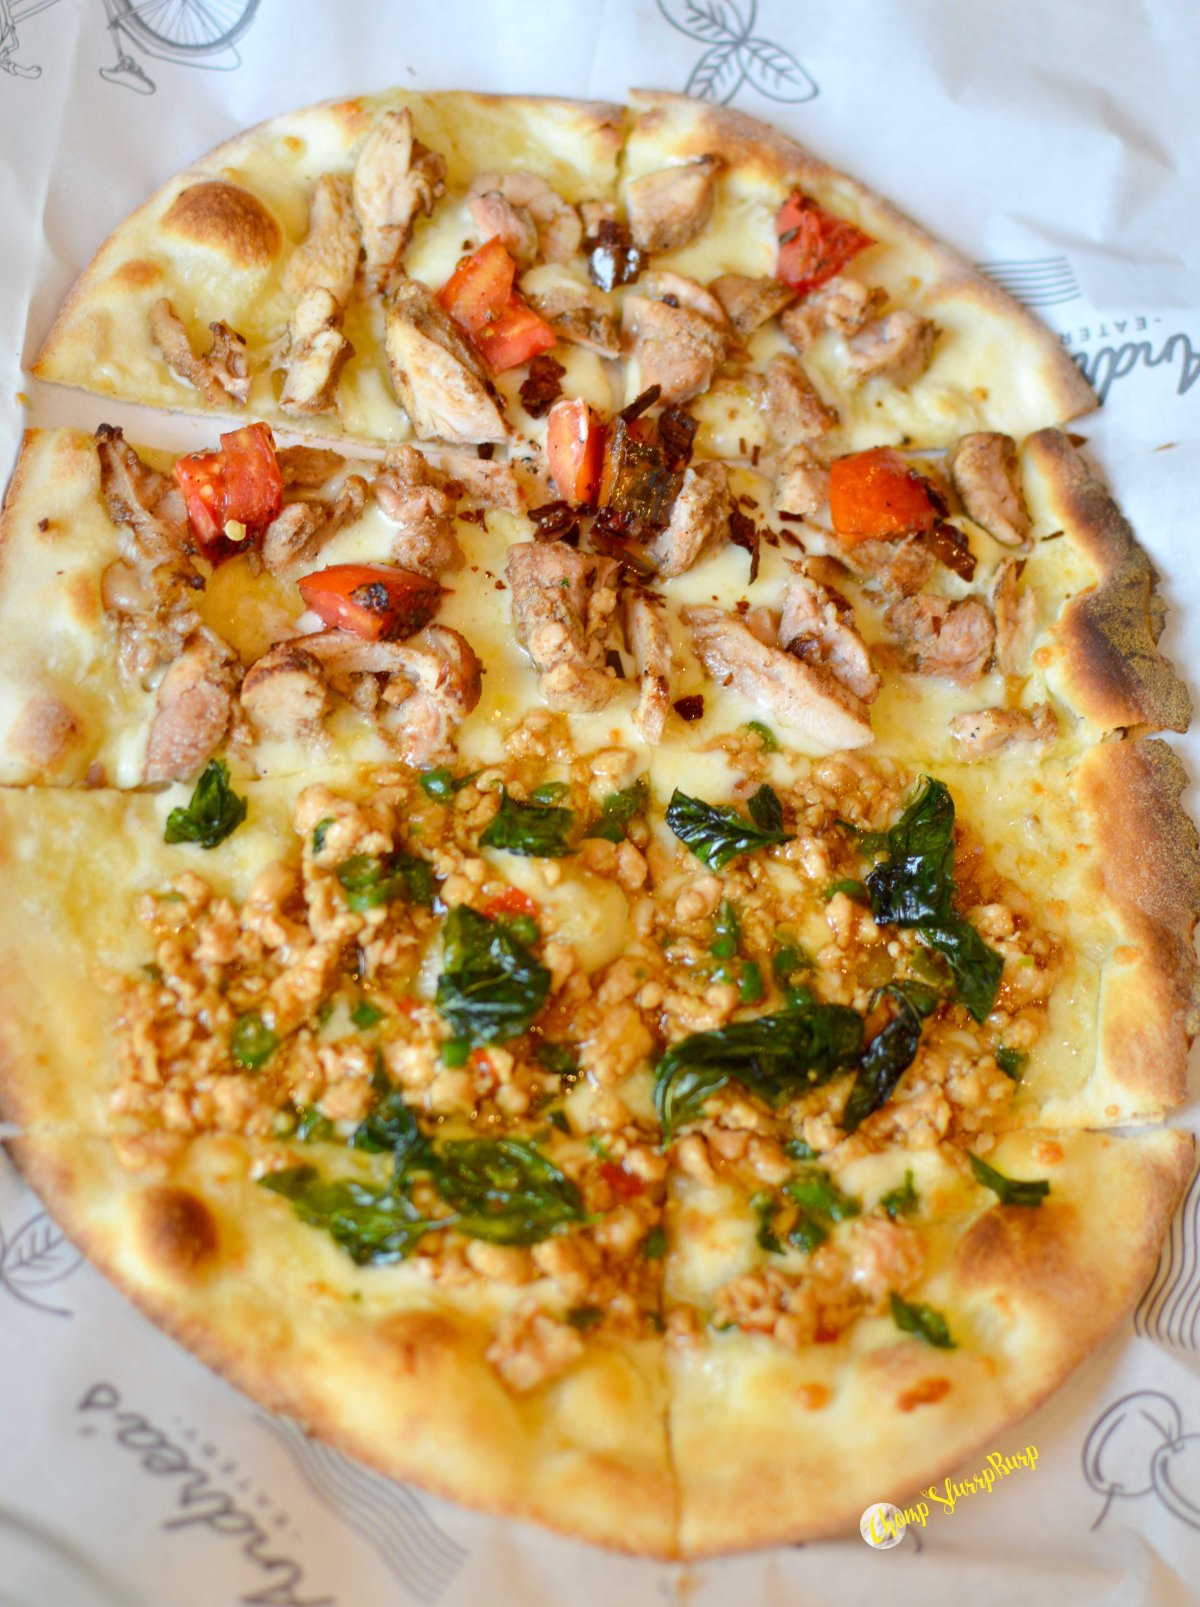 Pizza from amici